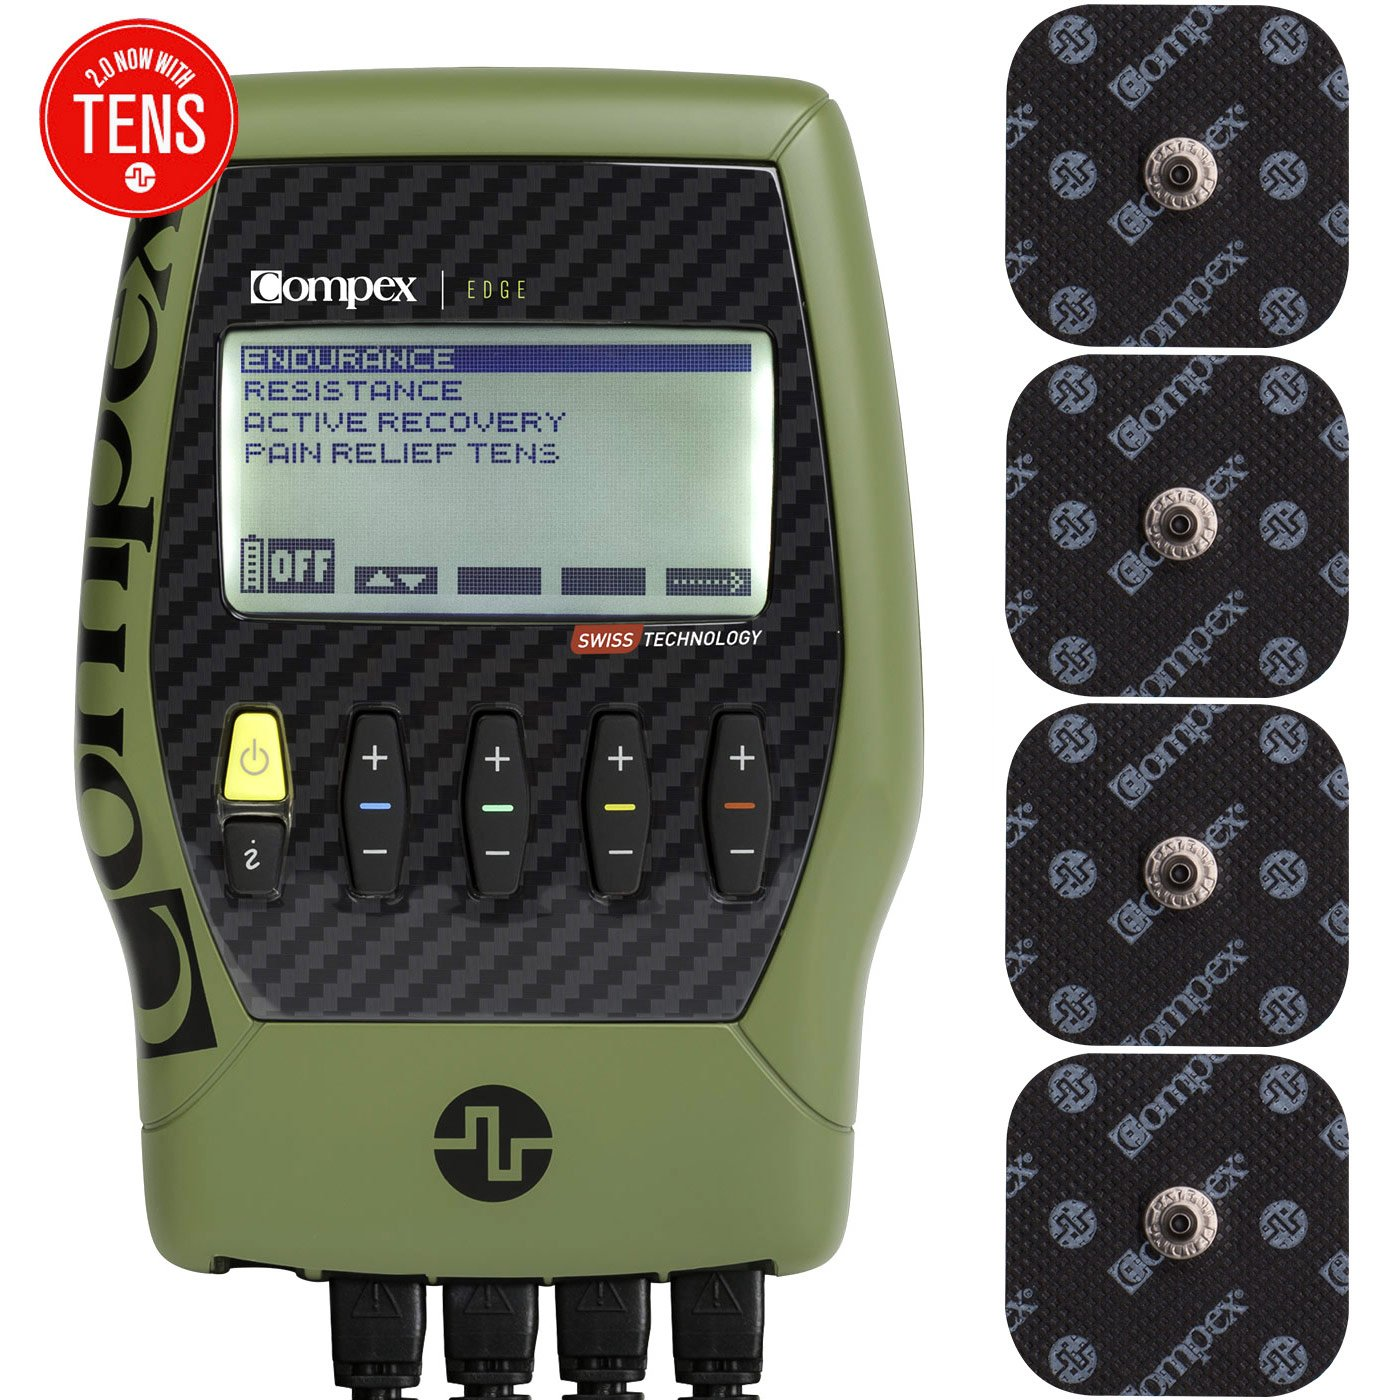 Compex Edge 2.0 Muscle Stimulator with TENS Bundle Kit: Electric Muscle Stimulation Machine (EMS) , 12 Snap Electrodes, 4 Programs, Lead Wires, Battery, Case / 2 strength, 1 recovery, 1 TENS